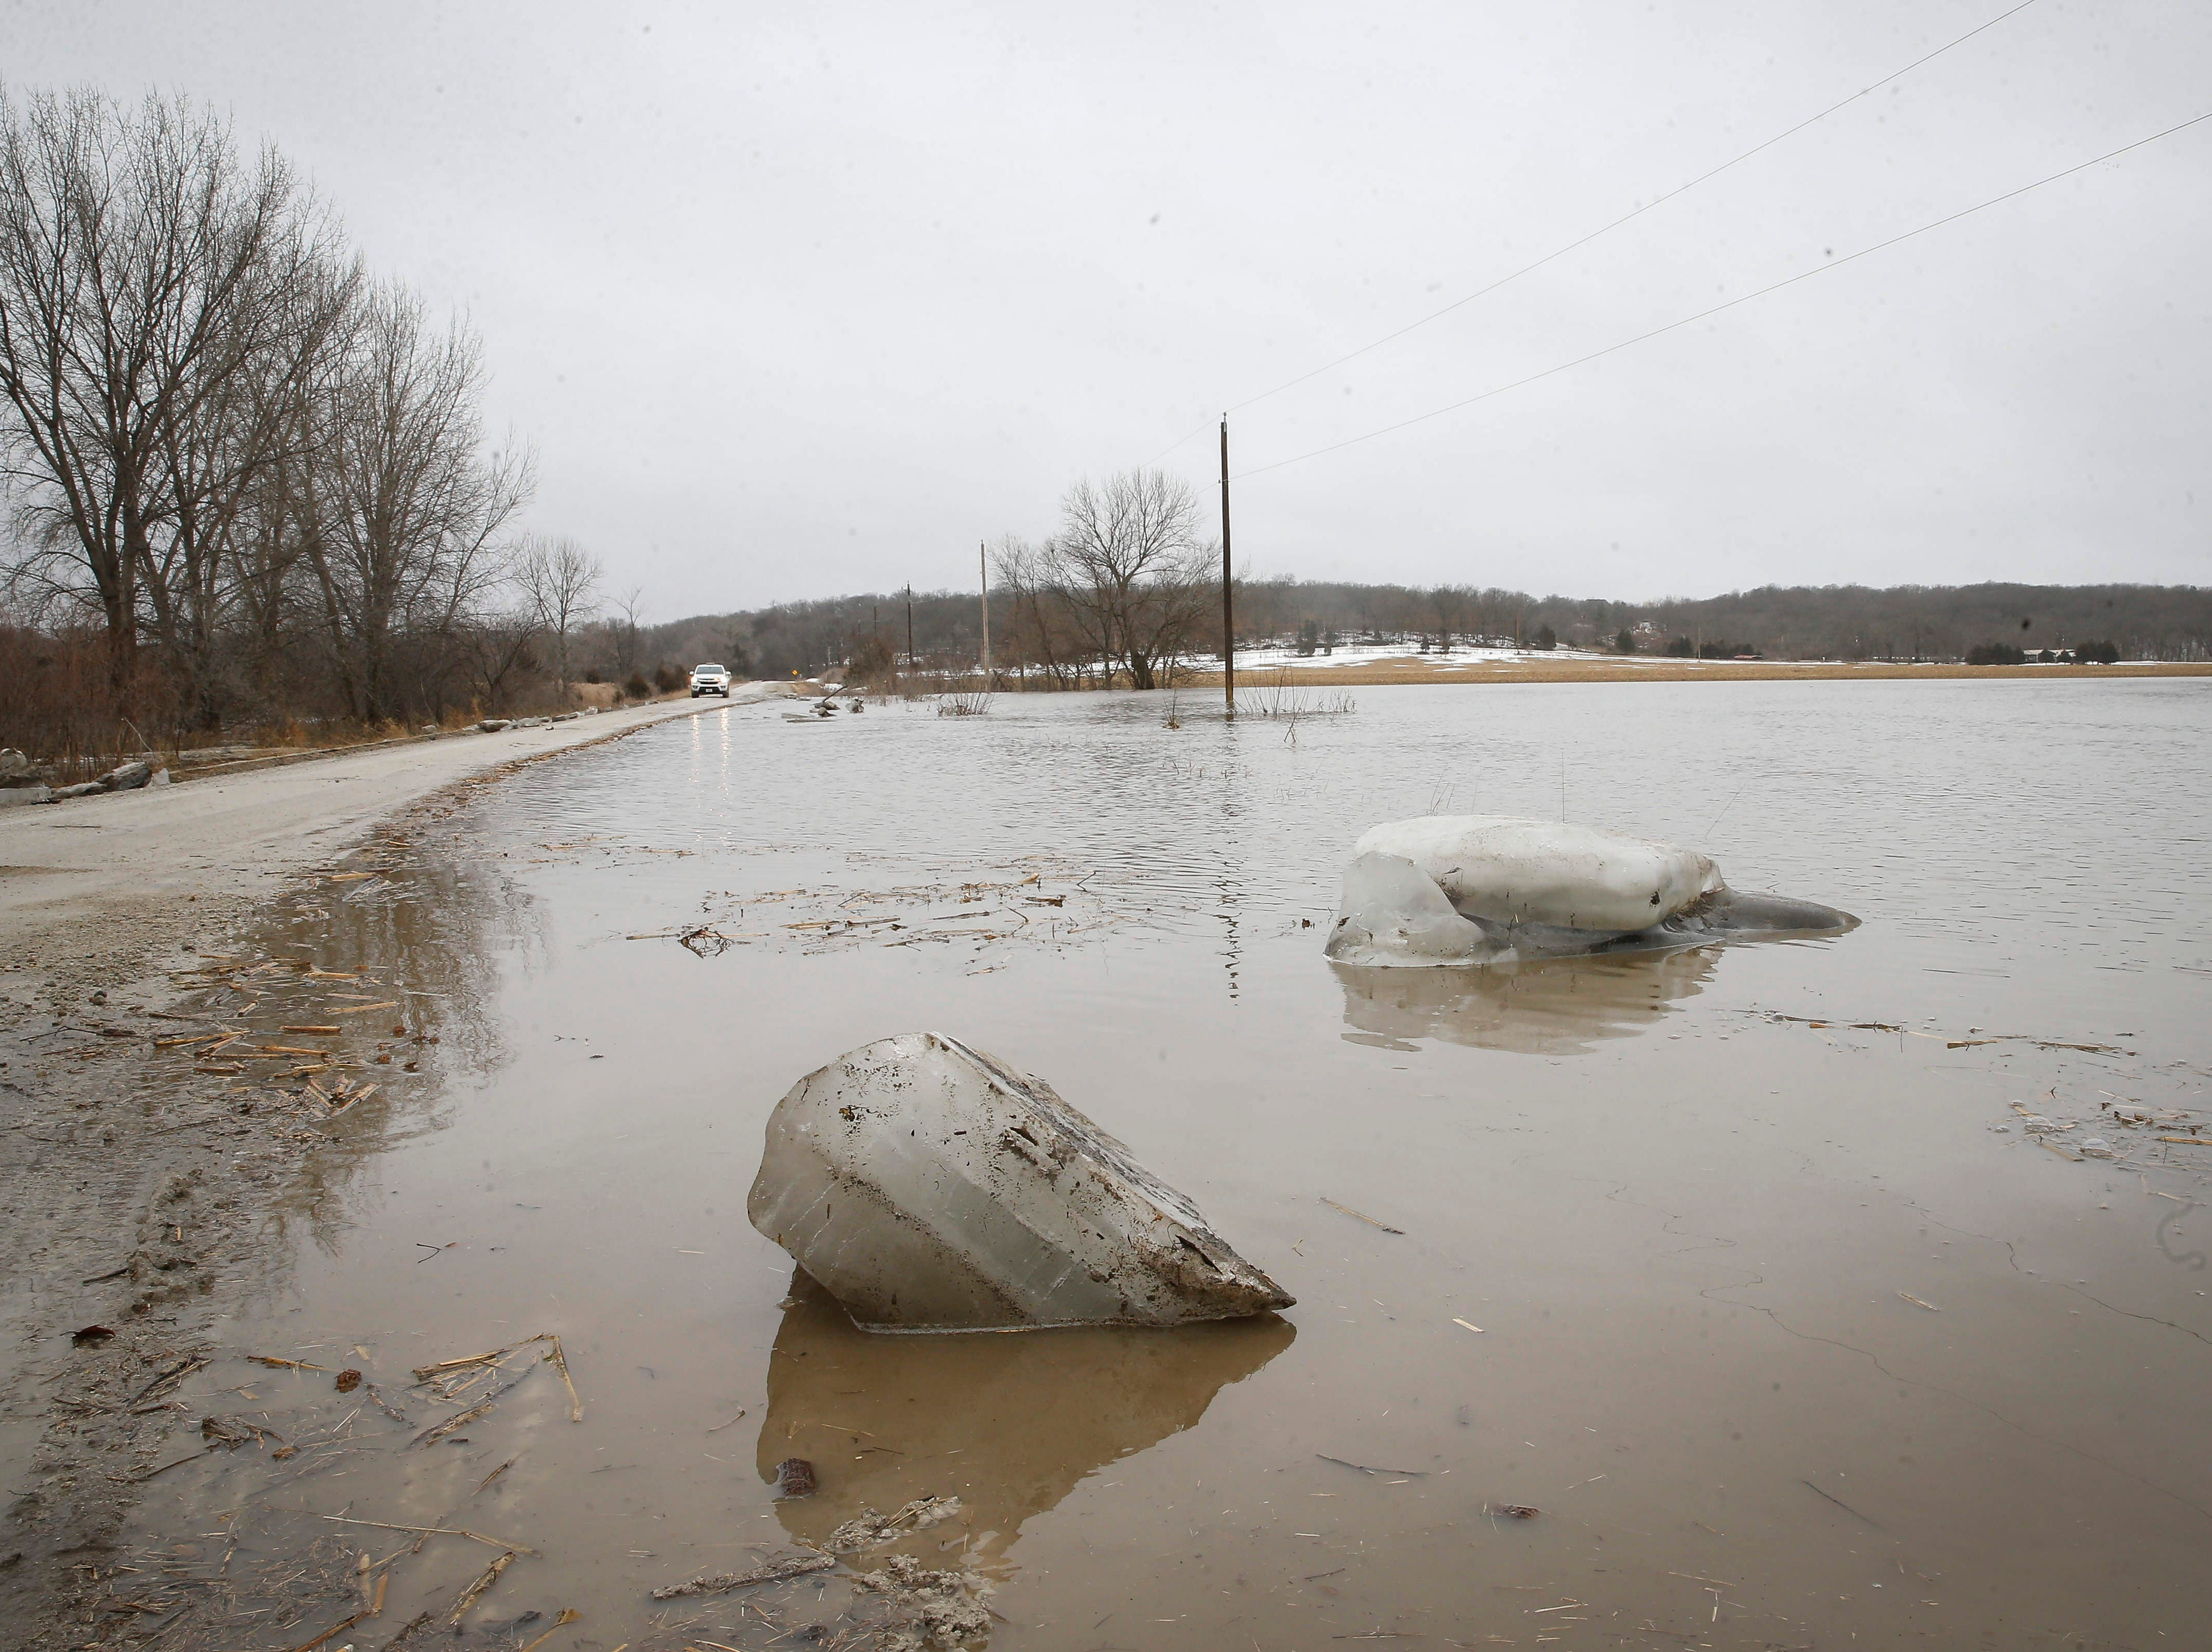 Large chunks of ice bob in the flooded water of the South Raccoon River near Redfield on Thursday, March 14, 2019. Flooding caused a portion of H Avenue to close as water flooded the road.